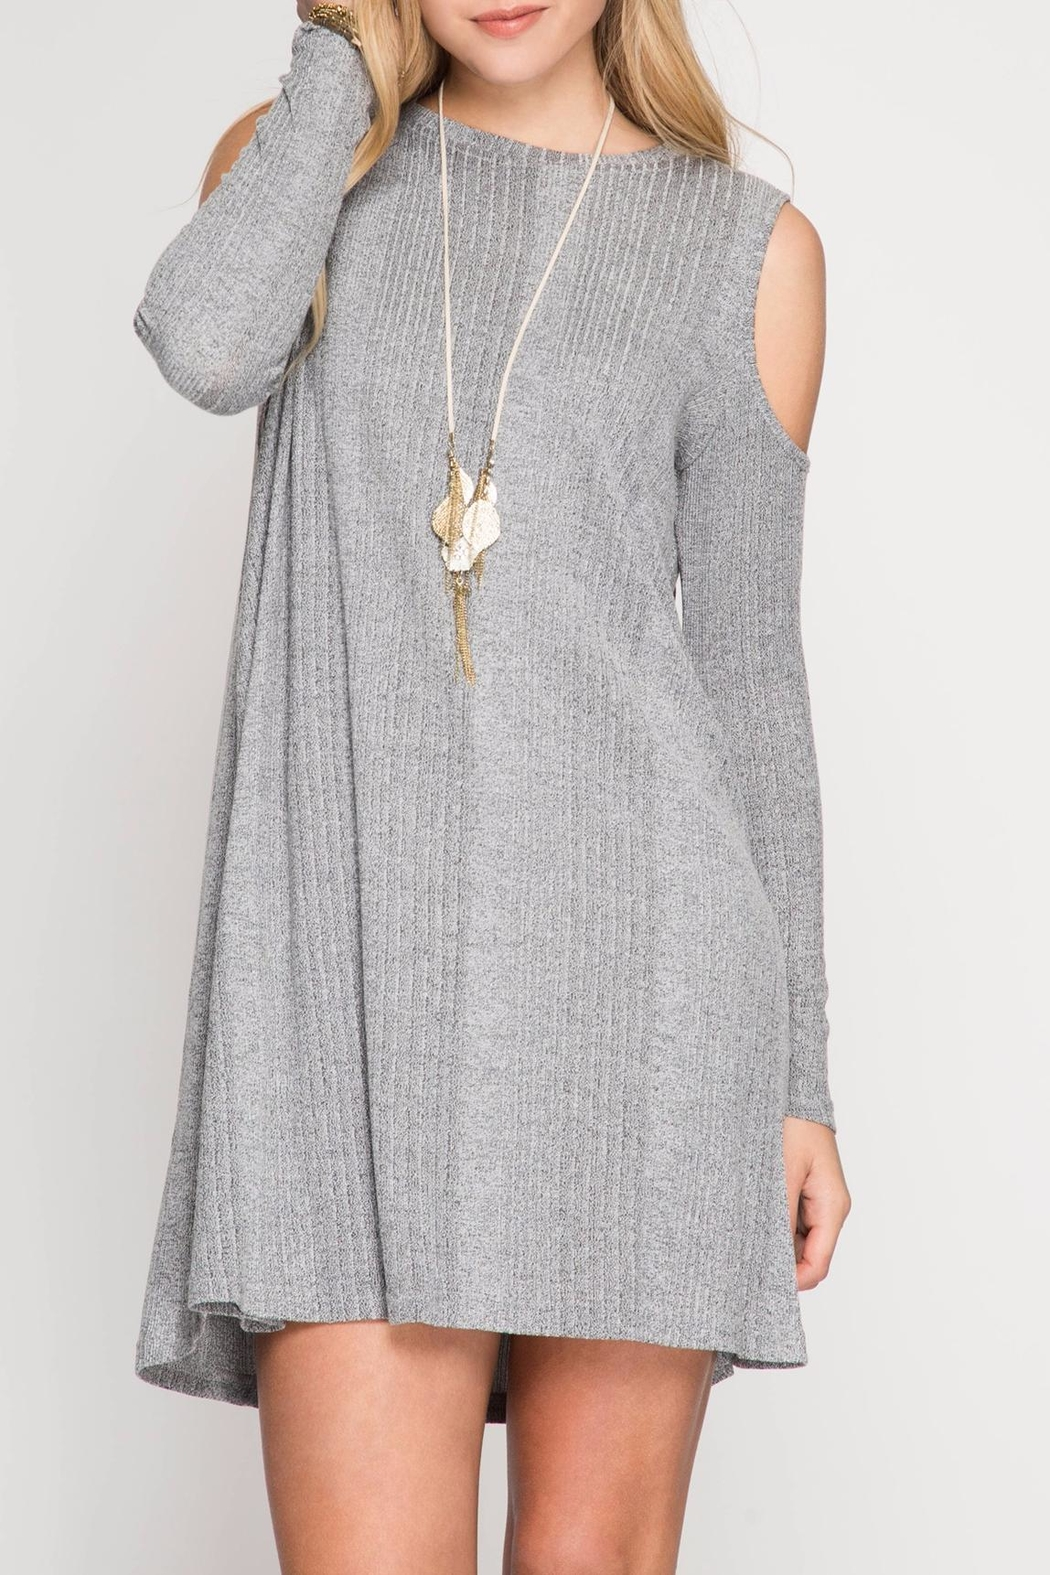 She + Sky Grey Shift Dress - Front Cropped Image